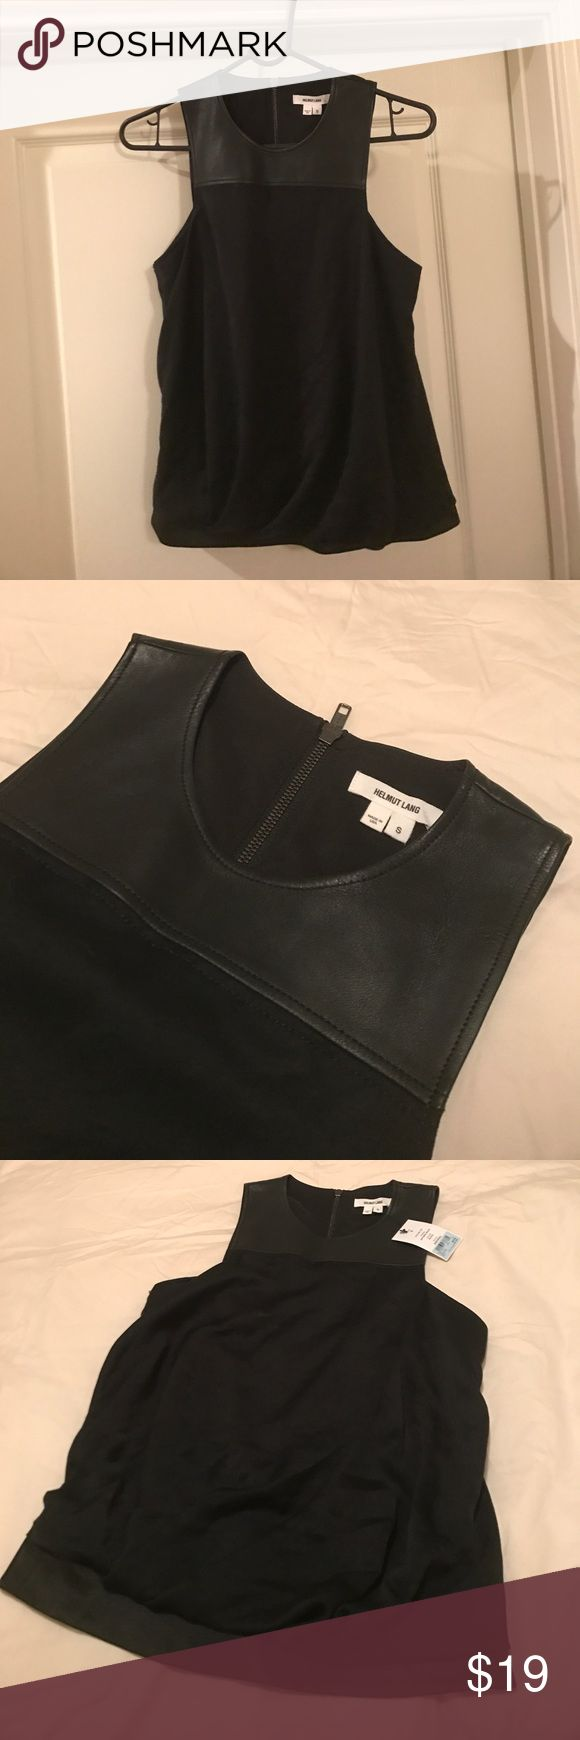 HELMUT LANG Black Top Black top by HELMUT LANG. Designer brand with tag on. Never wore before. It is listed as size S. But it feels small on me. I am 5'3 and 112 lbs. It fits more like XS or XXS. The Top part is made with leather. The body fabric is Artemis drape. Has a light suede type of feel. The bottom band is chiffon type of fabric. Helmut Lang Tops